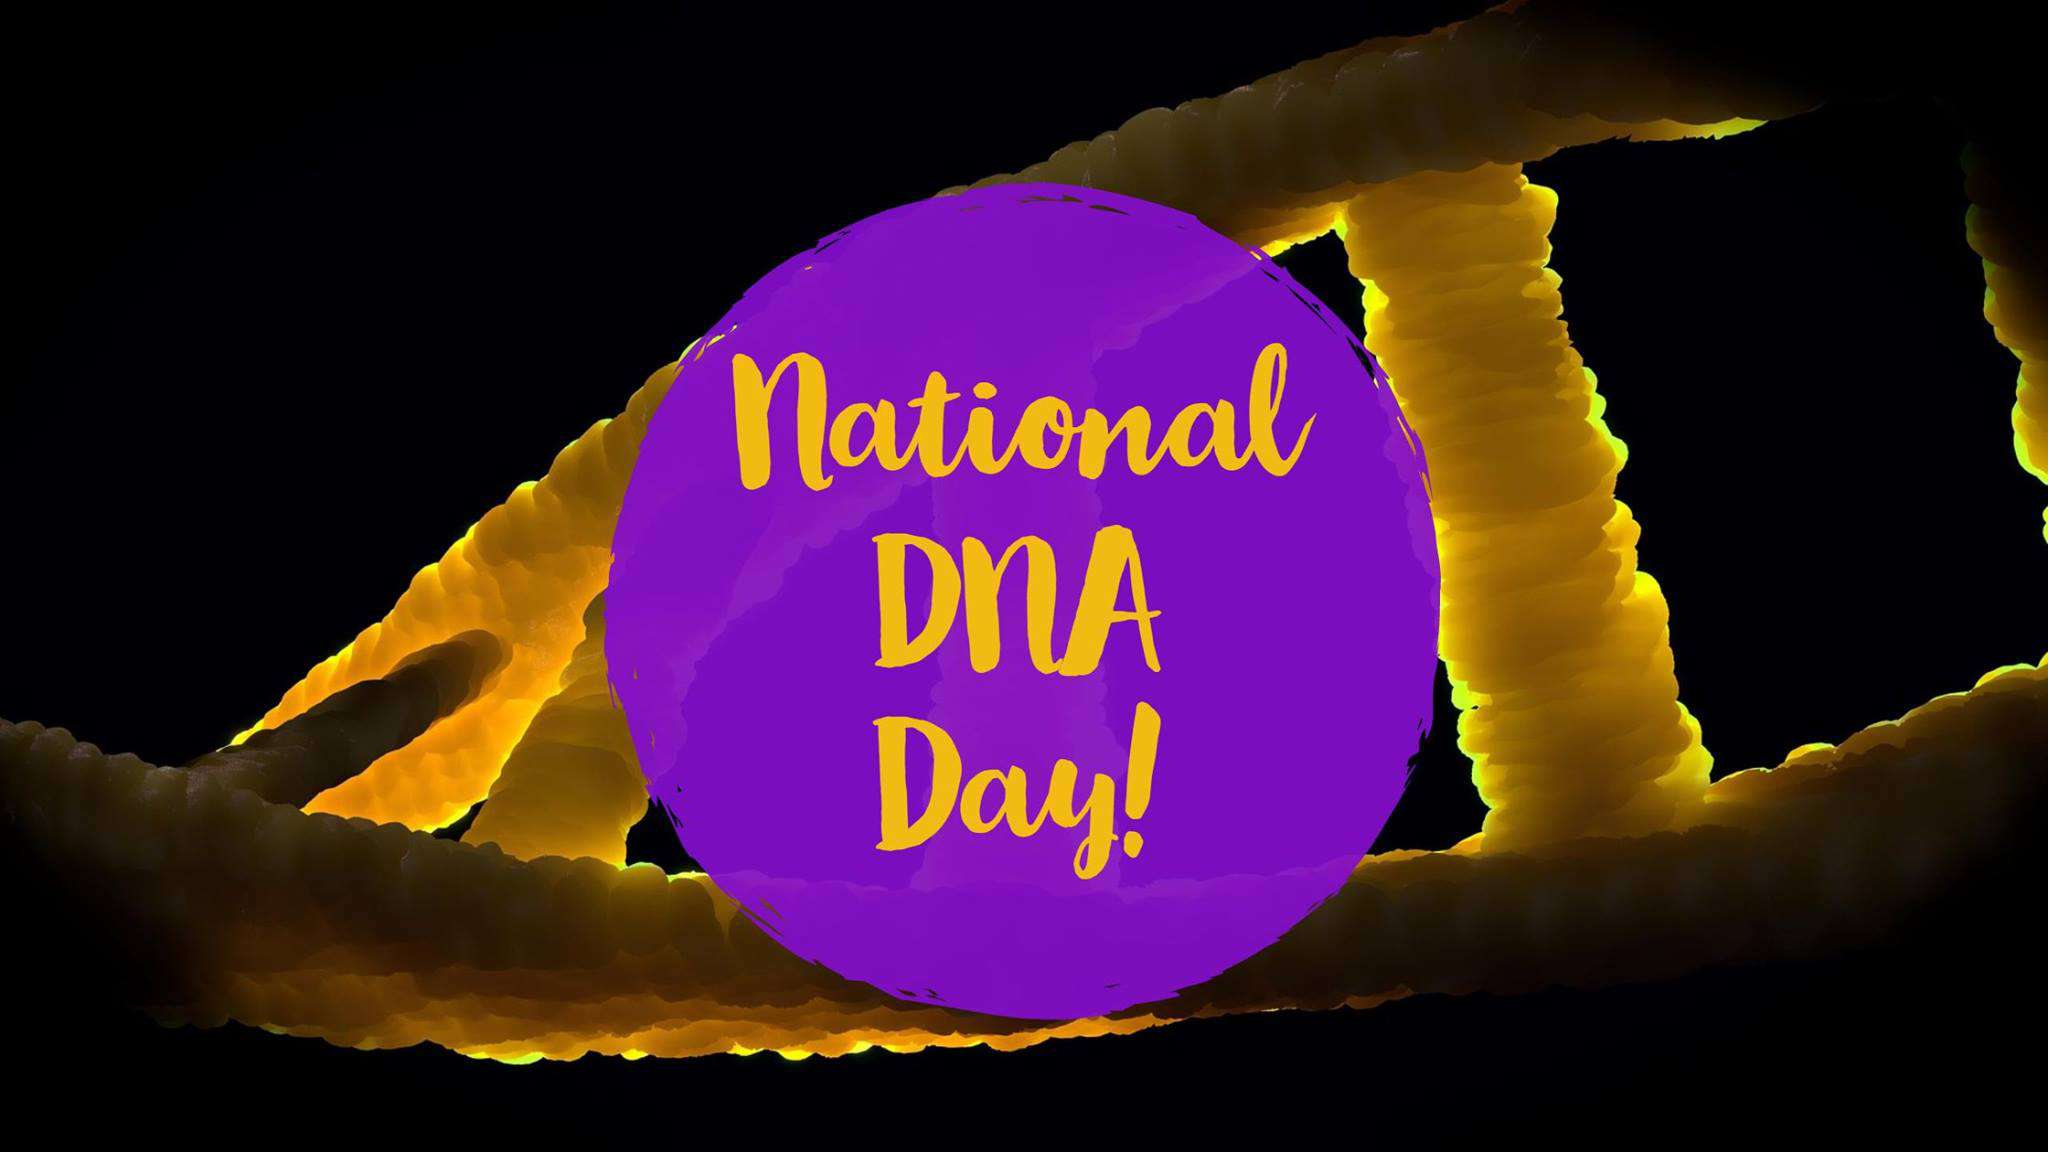 National DNA Day Wishes Images download